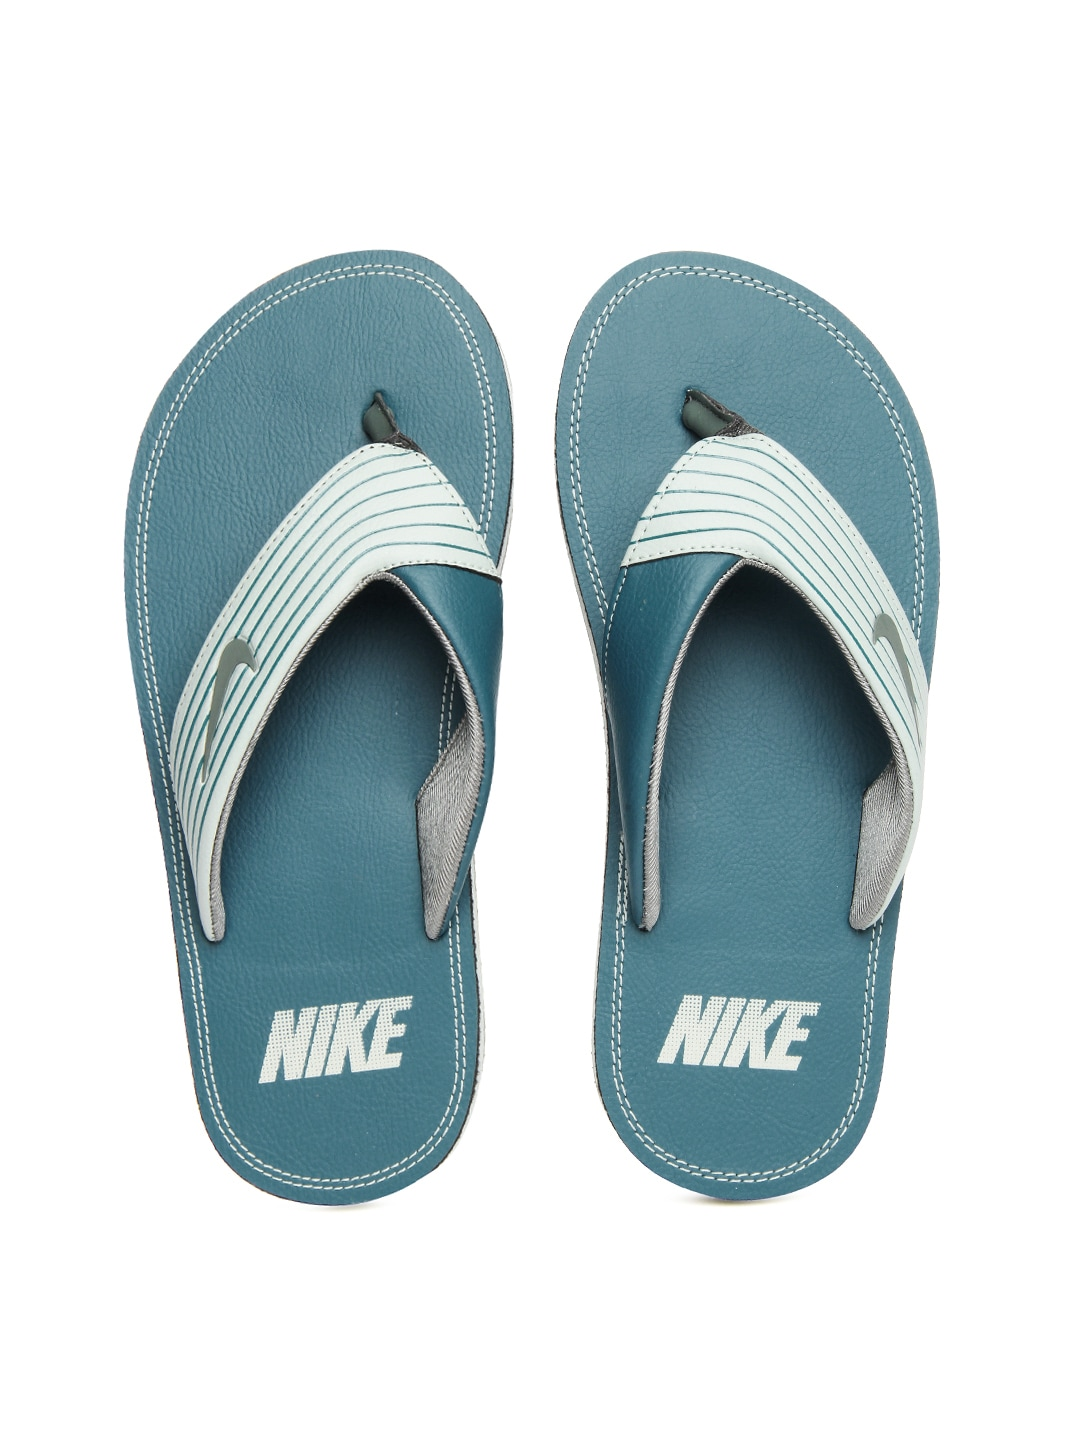 Nike 636165-300 Men Teal Green Chroma Thong Iii Flip Flops- Price in India